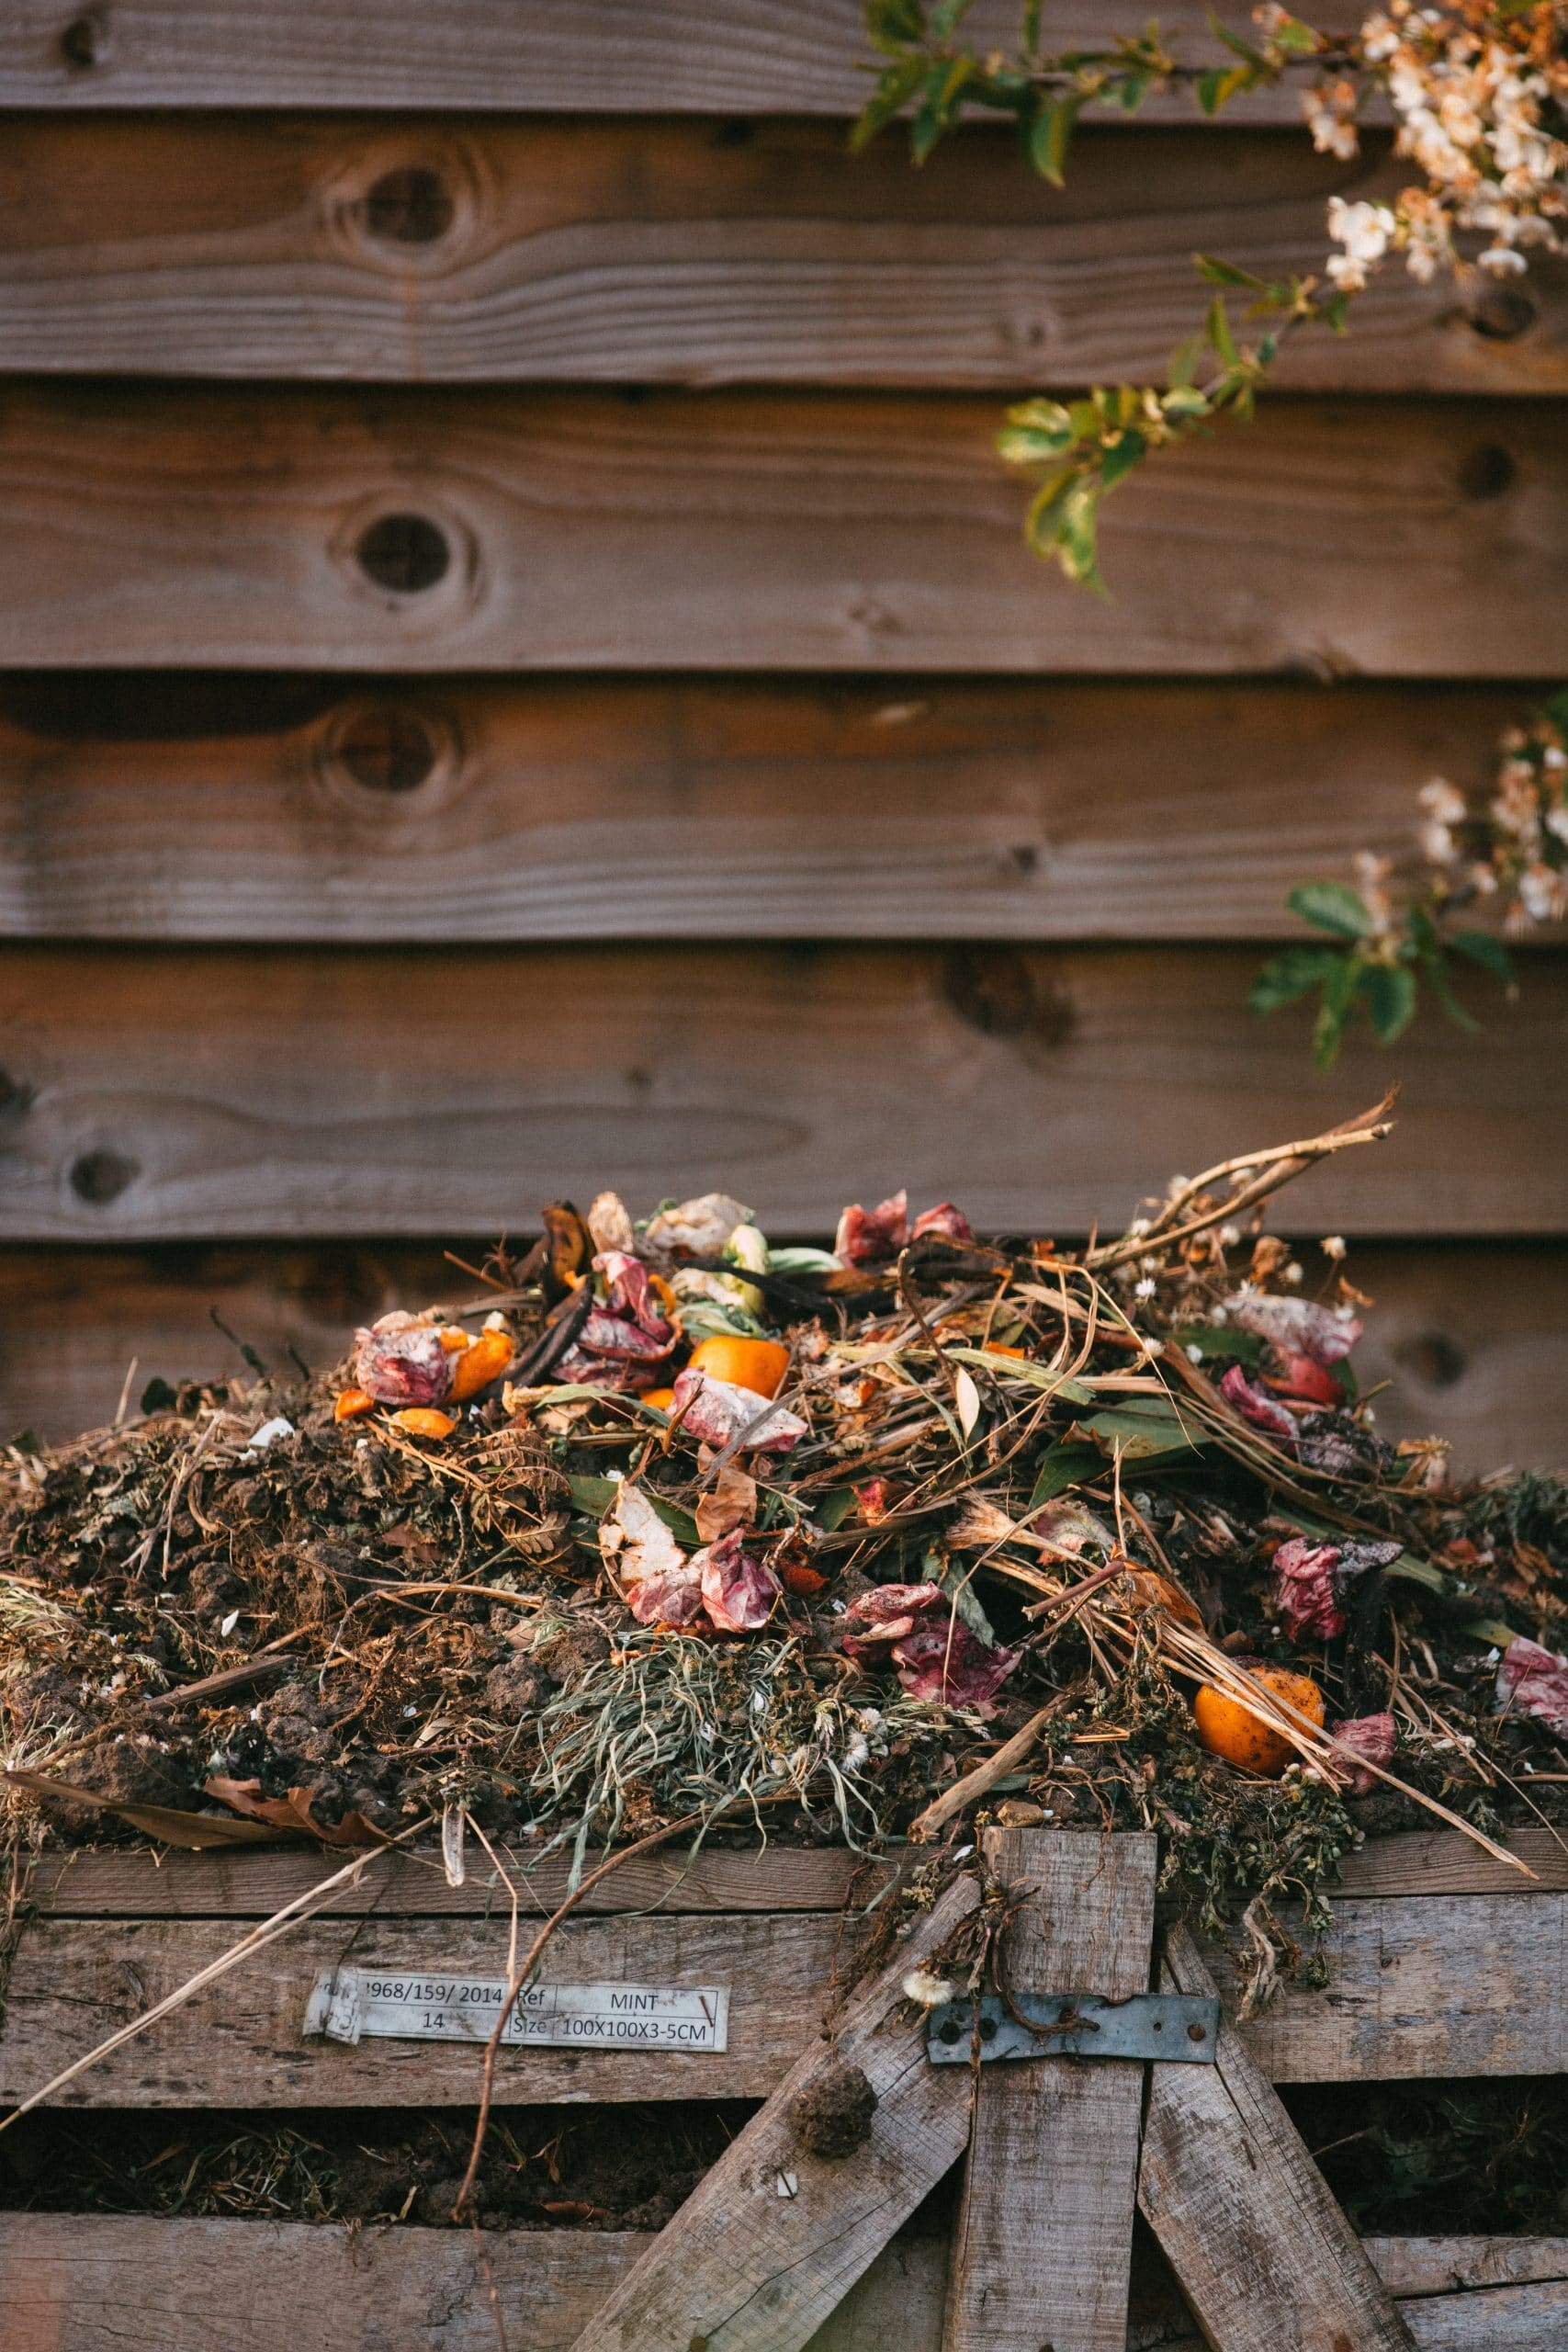 Melcourt composting tips